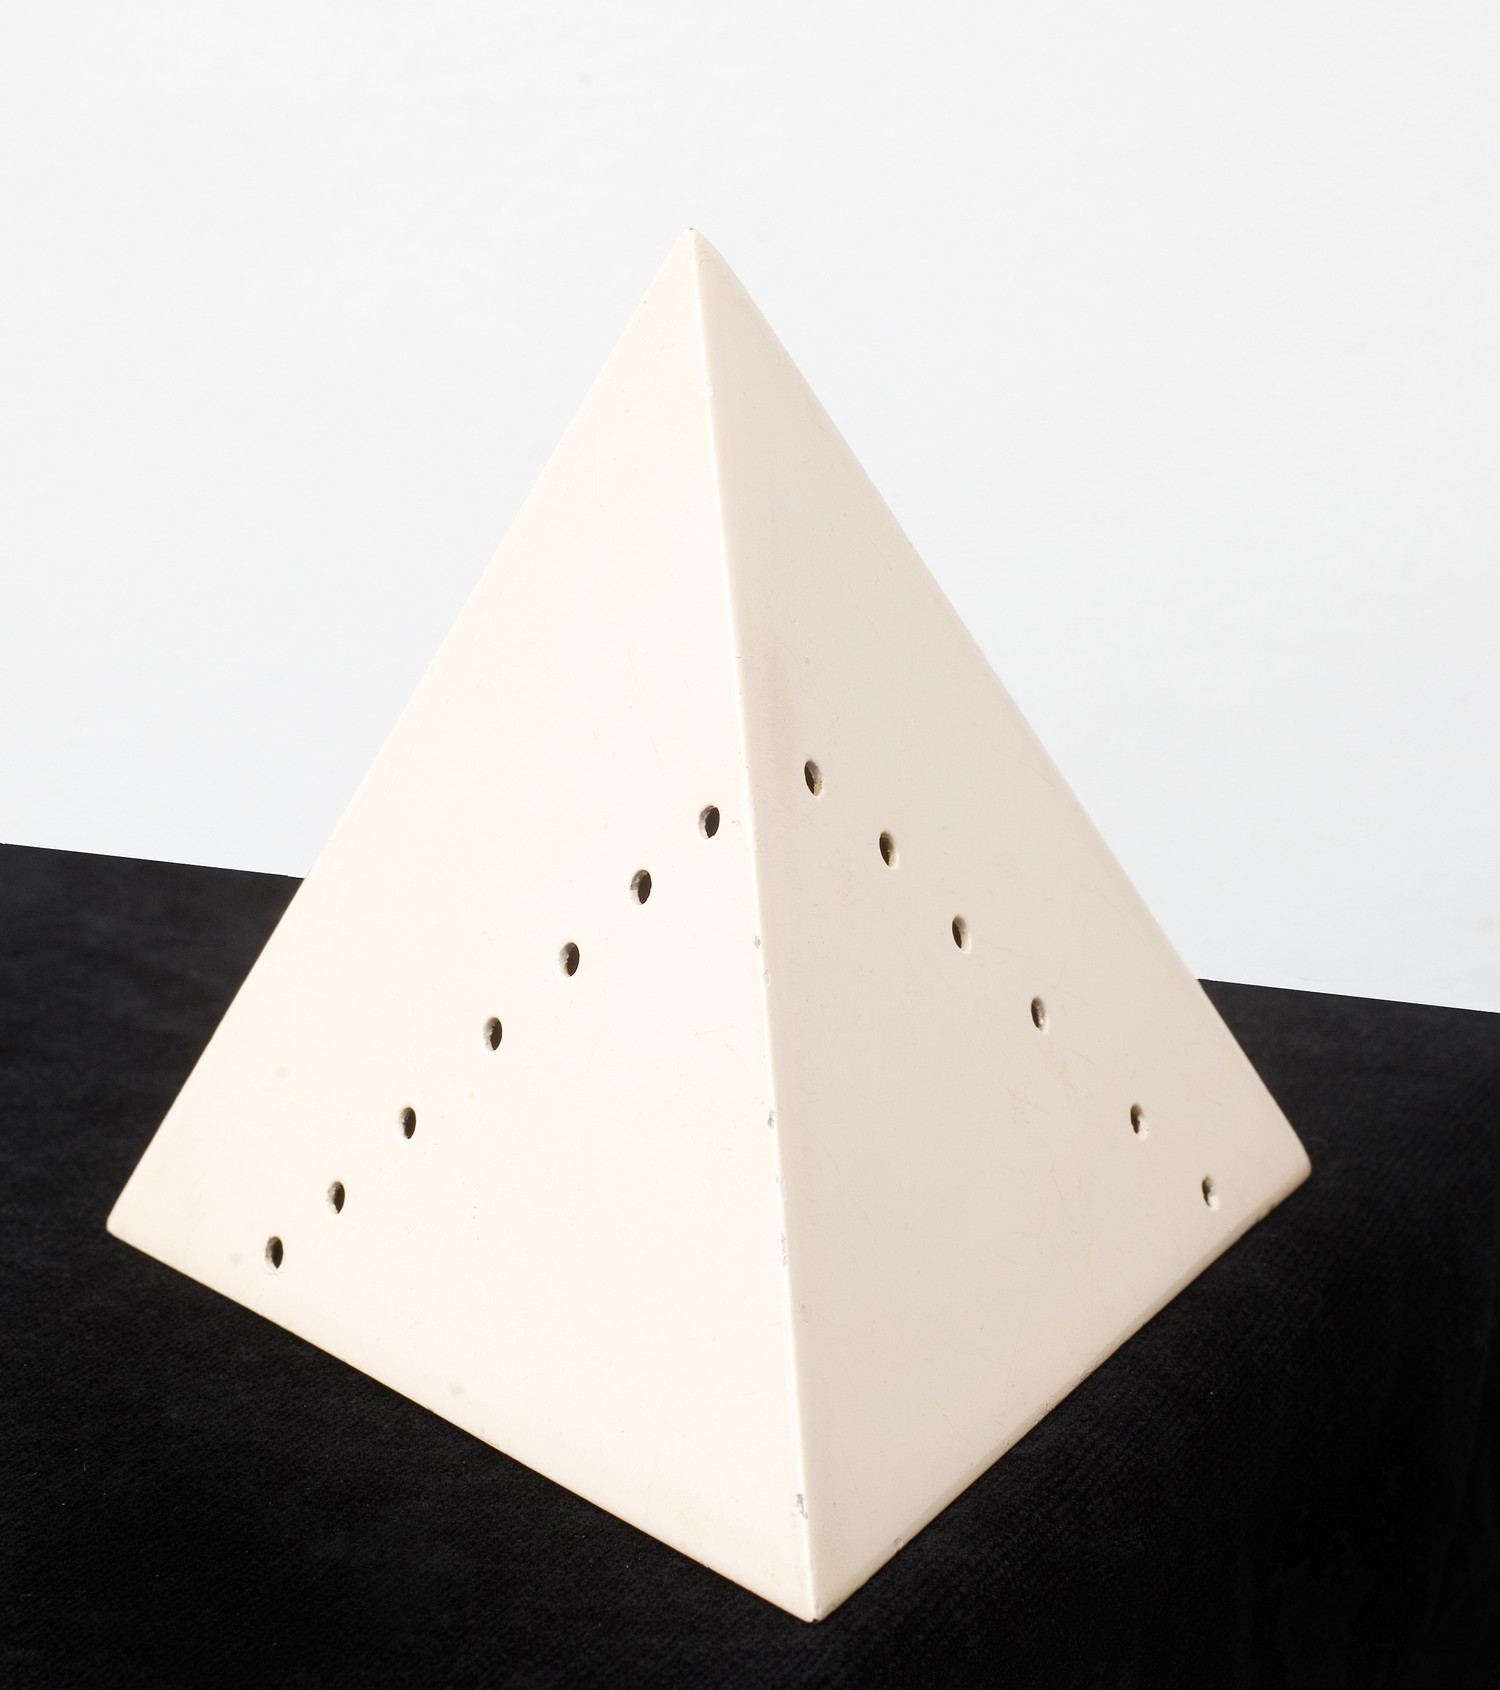 Lucio Fontana,  Piramide , c.1967, Metal, pink lacquer, 11 x 13 x 13 cm, Numbered and signed 30/50 as well as L. Fontana. Edition 30/50